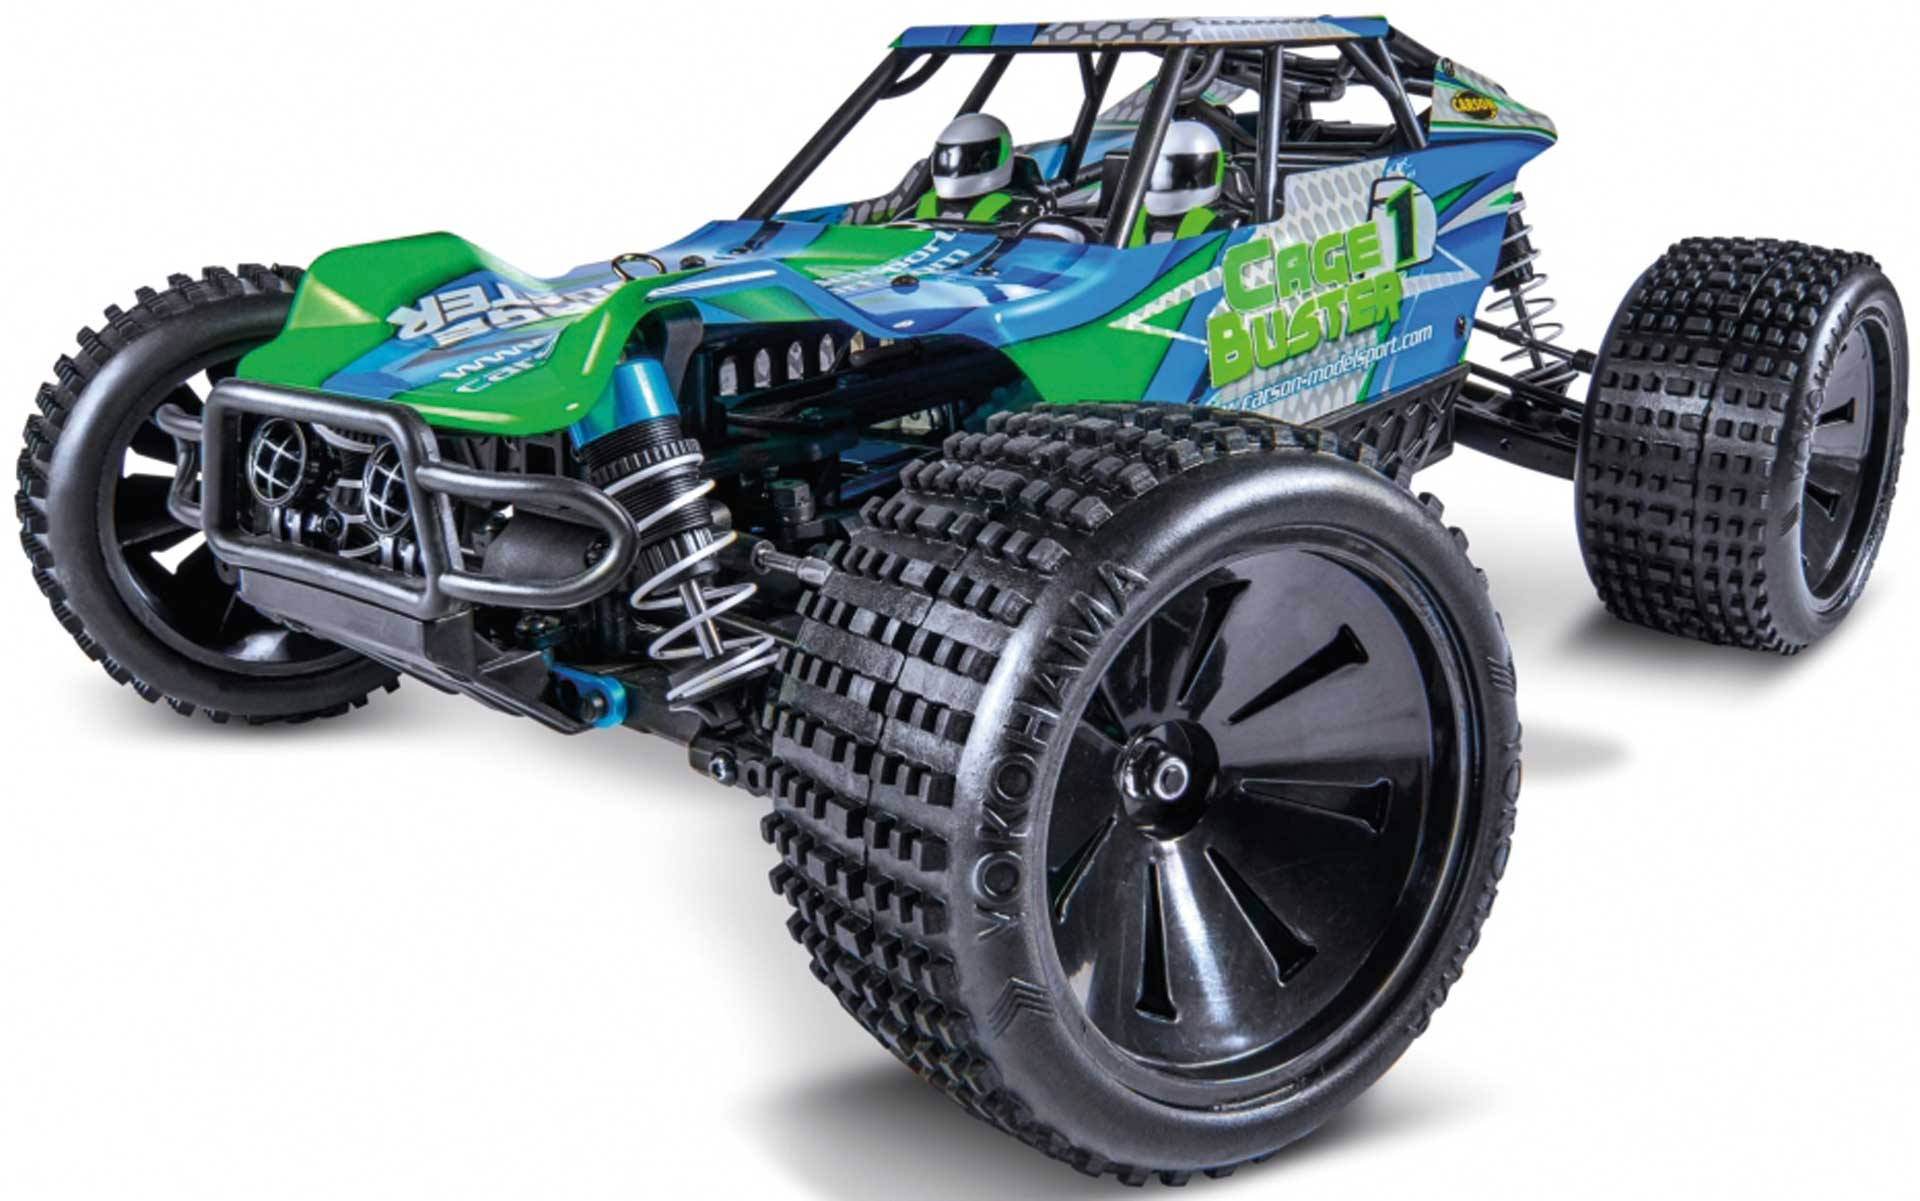 CARSON HOSS 4x4 VXL 3S 1/10 RTR Monster Truck Shadow-Red Brushless without battery/charger